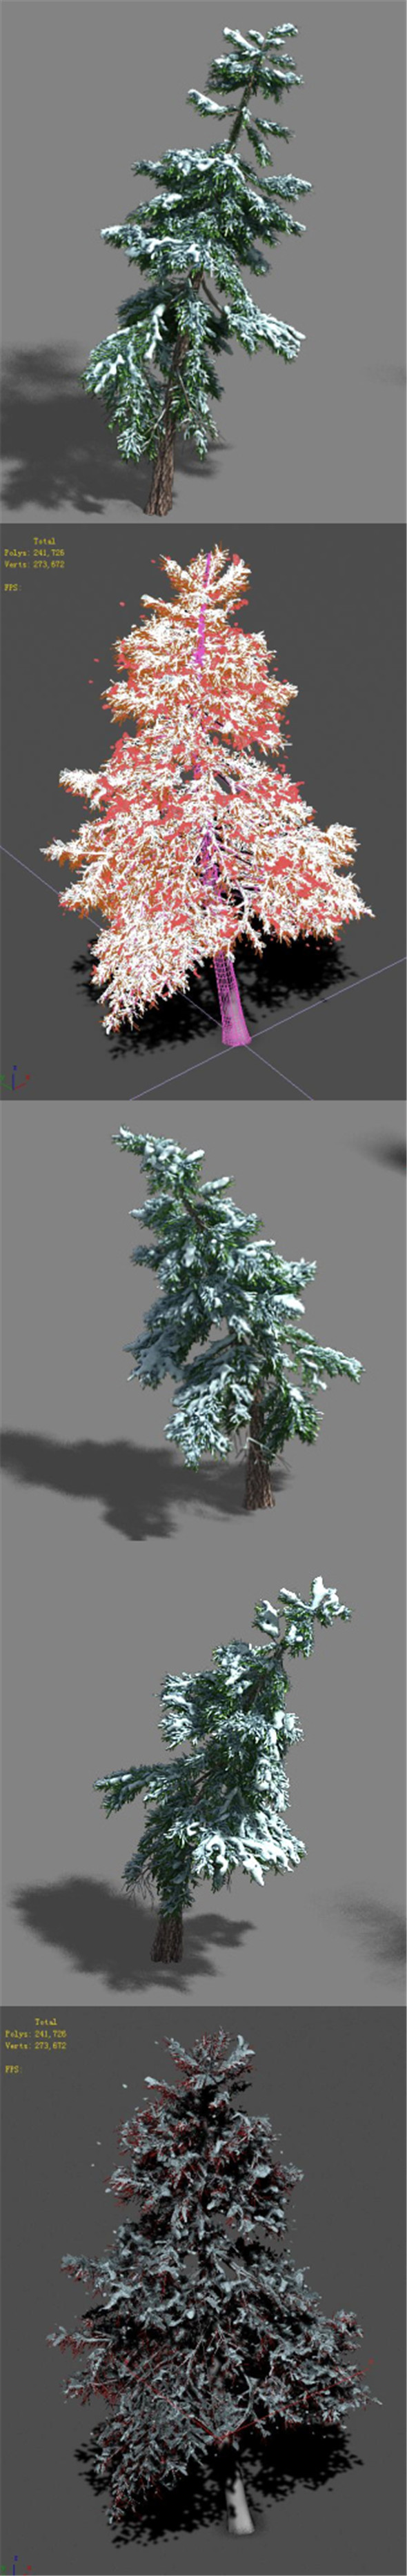 Ice and Snow - Cedar 02 - 3DOcean Item for Sale